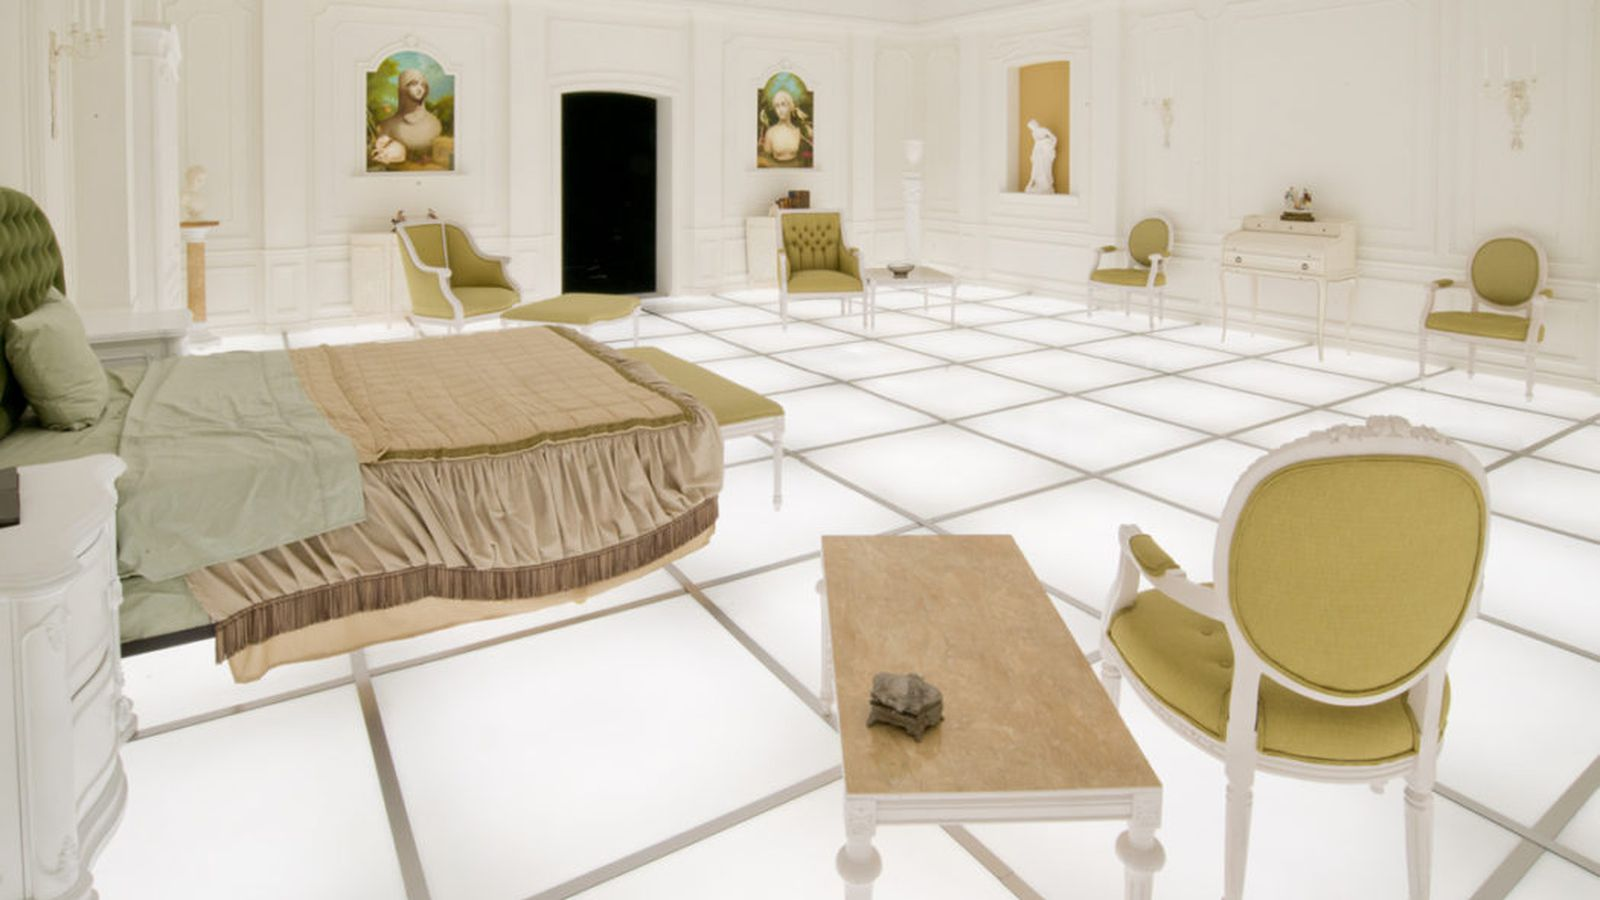 Iconic 2001 A Space Odyssey Bedroom Scene Recreated In